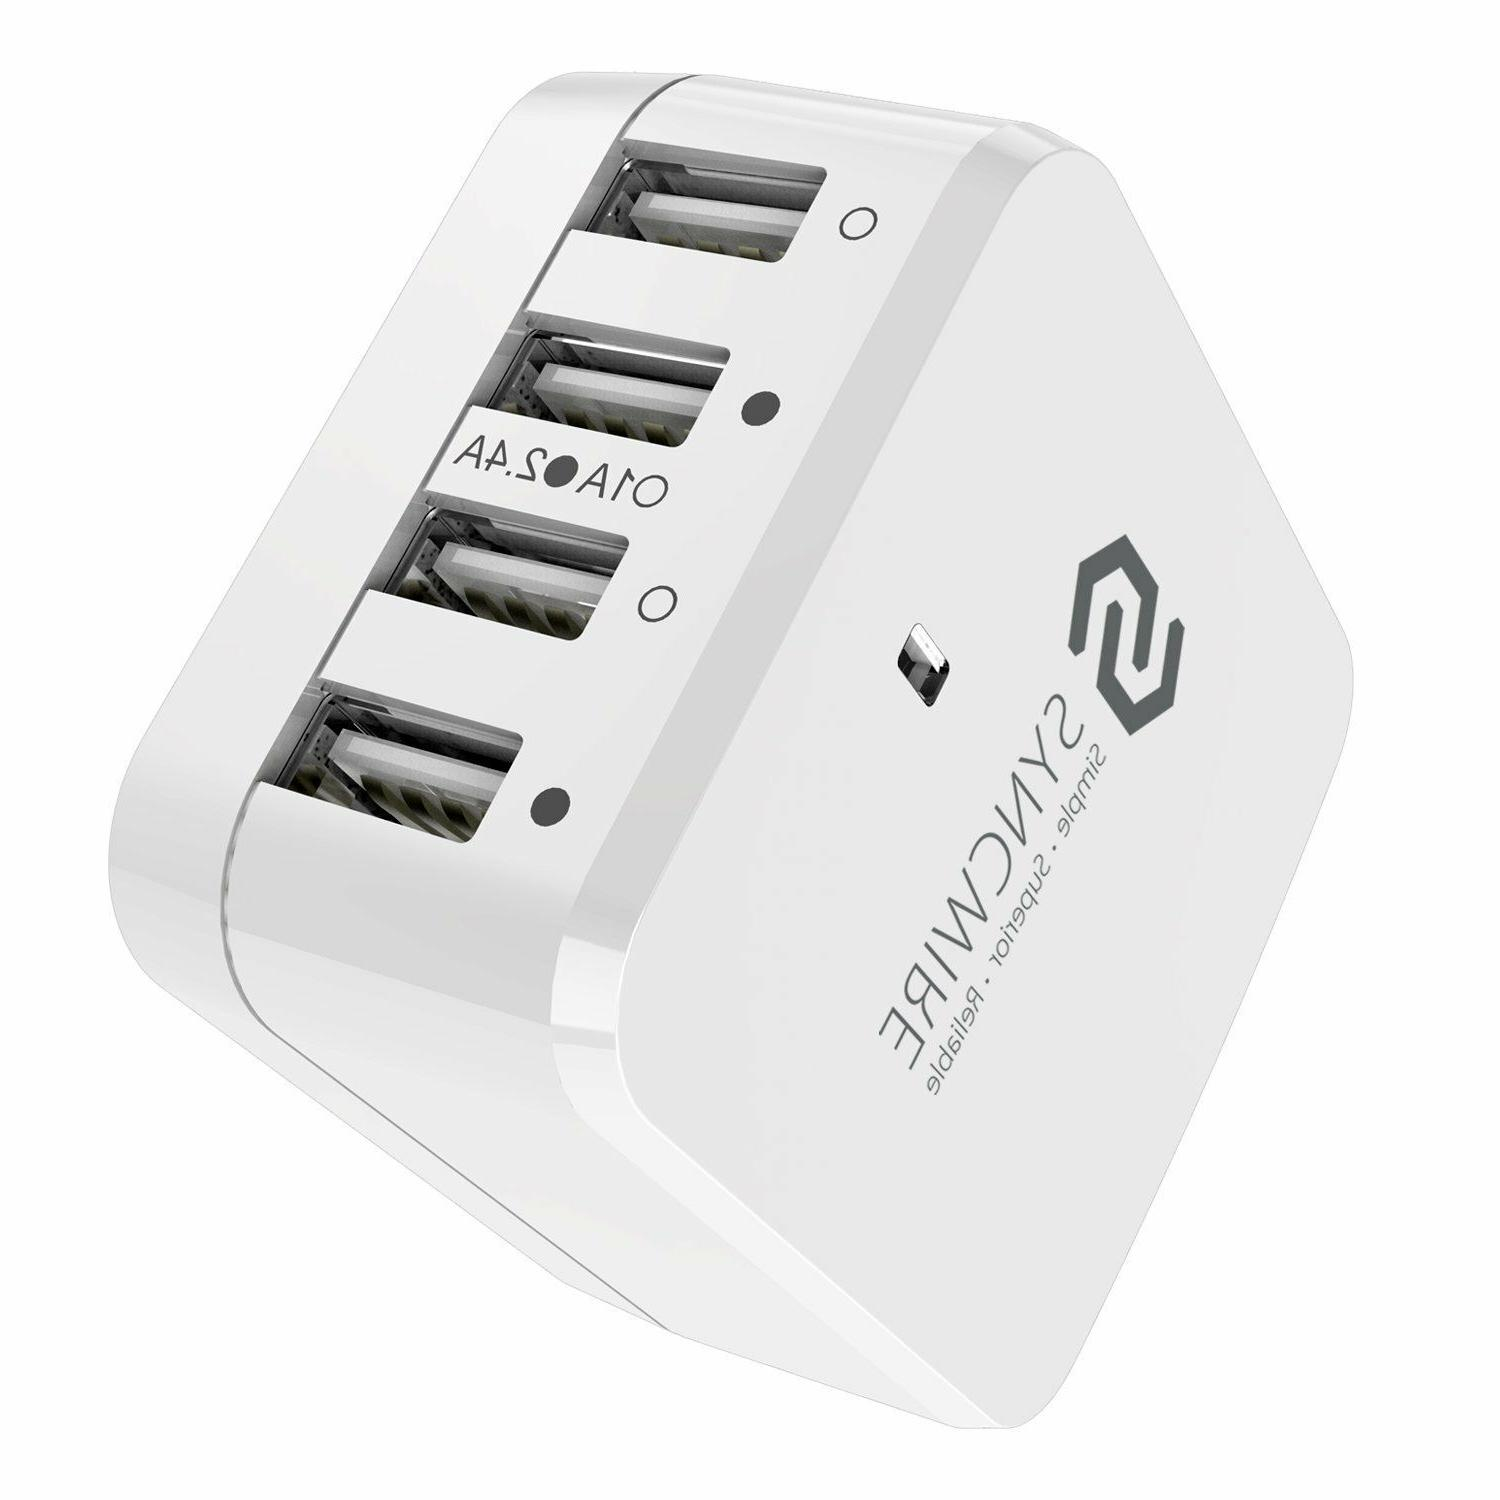 Syncwire 4-Port Charger UK for iPhone